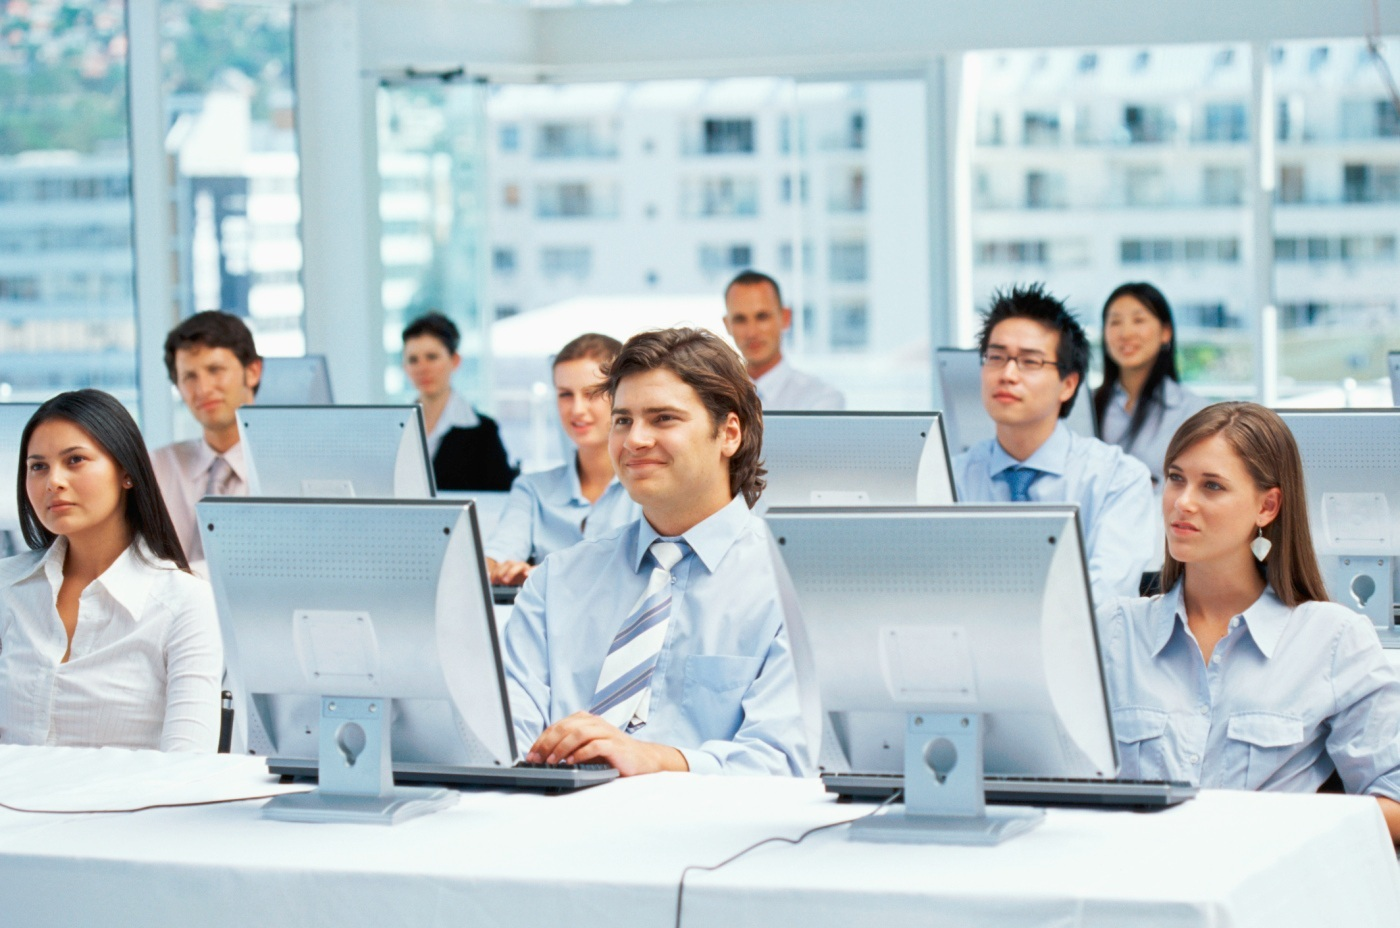 Drawn office software engineer Training Engineering How to Design